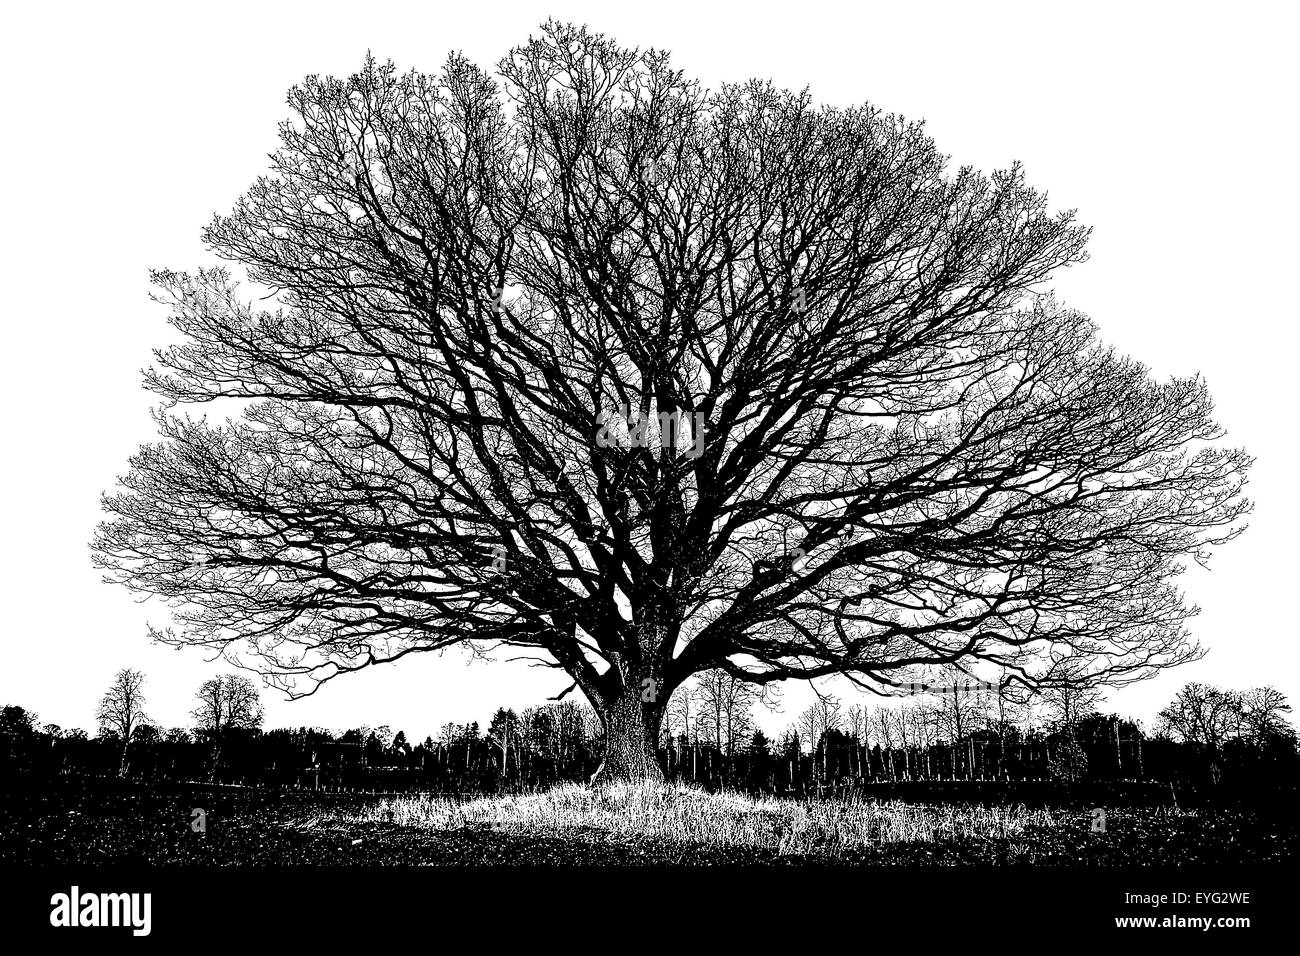 Big old oak tree, English oak, with winter leafless branches in silhouette as pen and ink, black and white, artistic Stock Photo